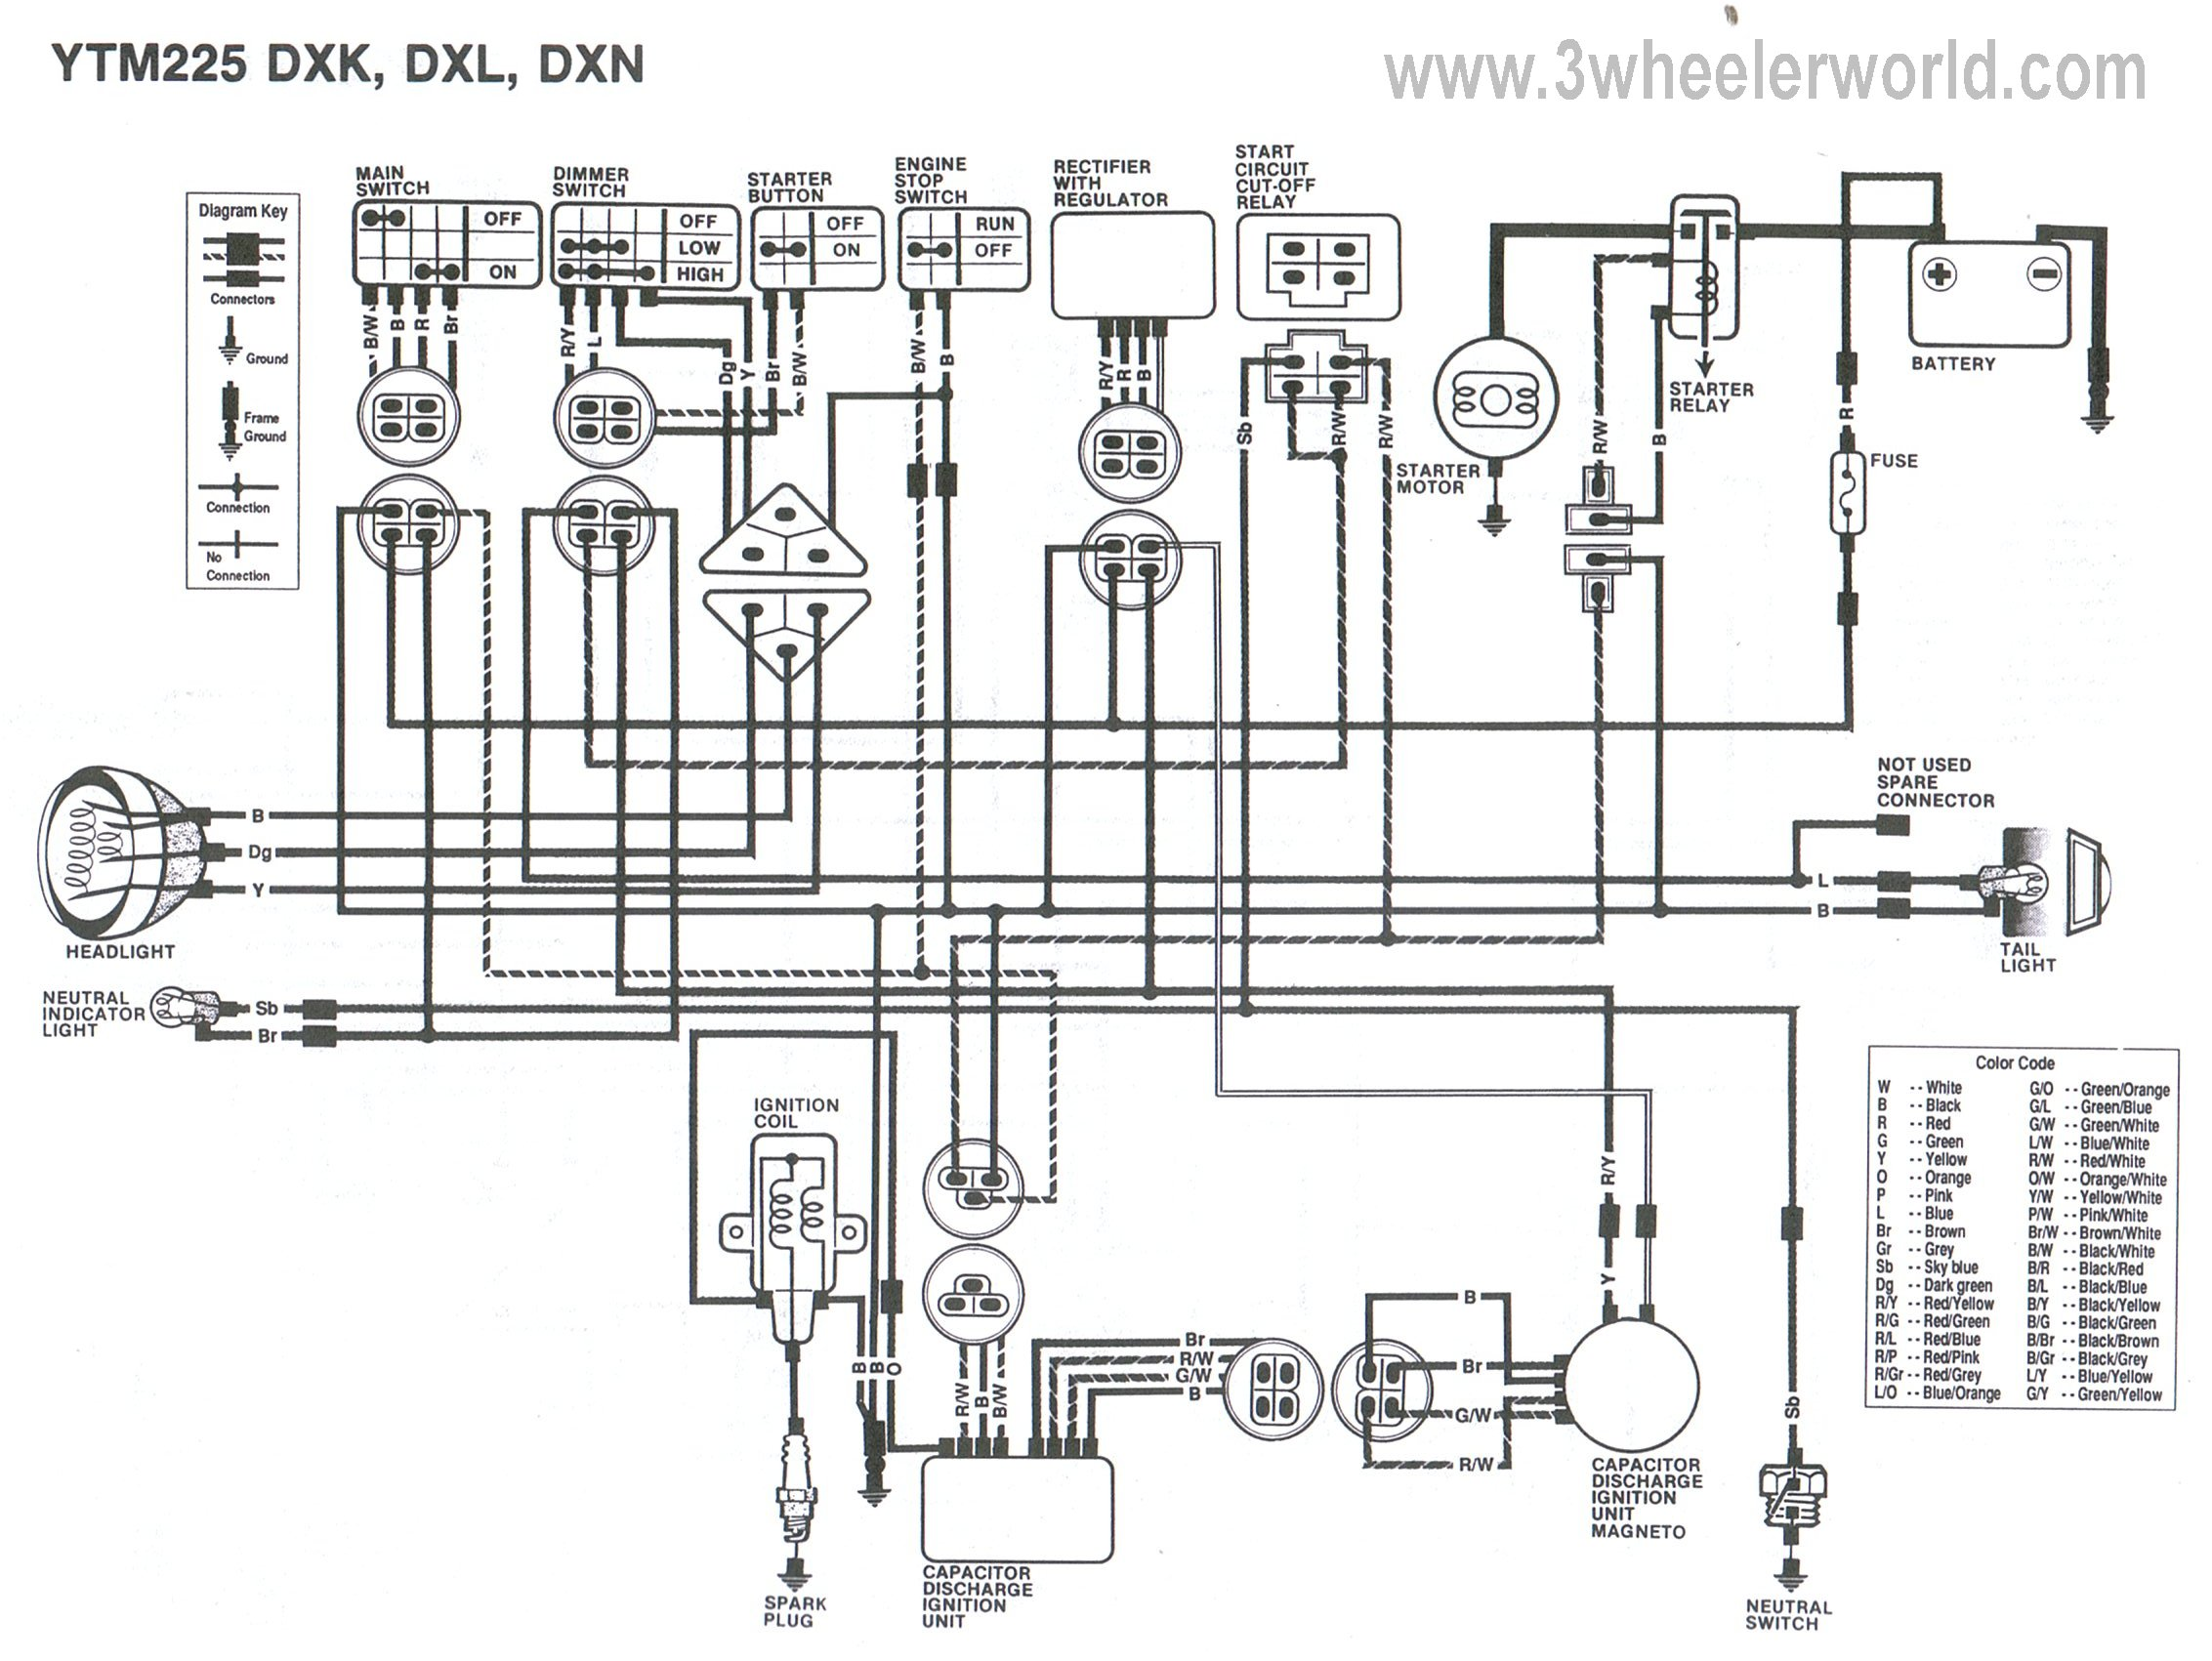 wiring diagram 2001 379 peterbilt. wiring. discover your wiring Wiring diagram